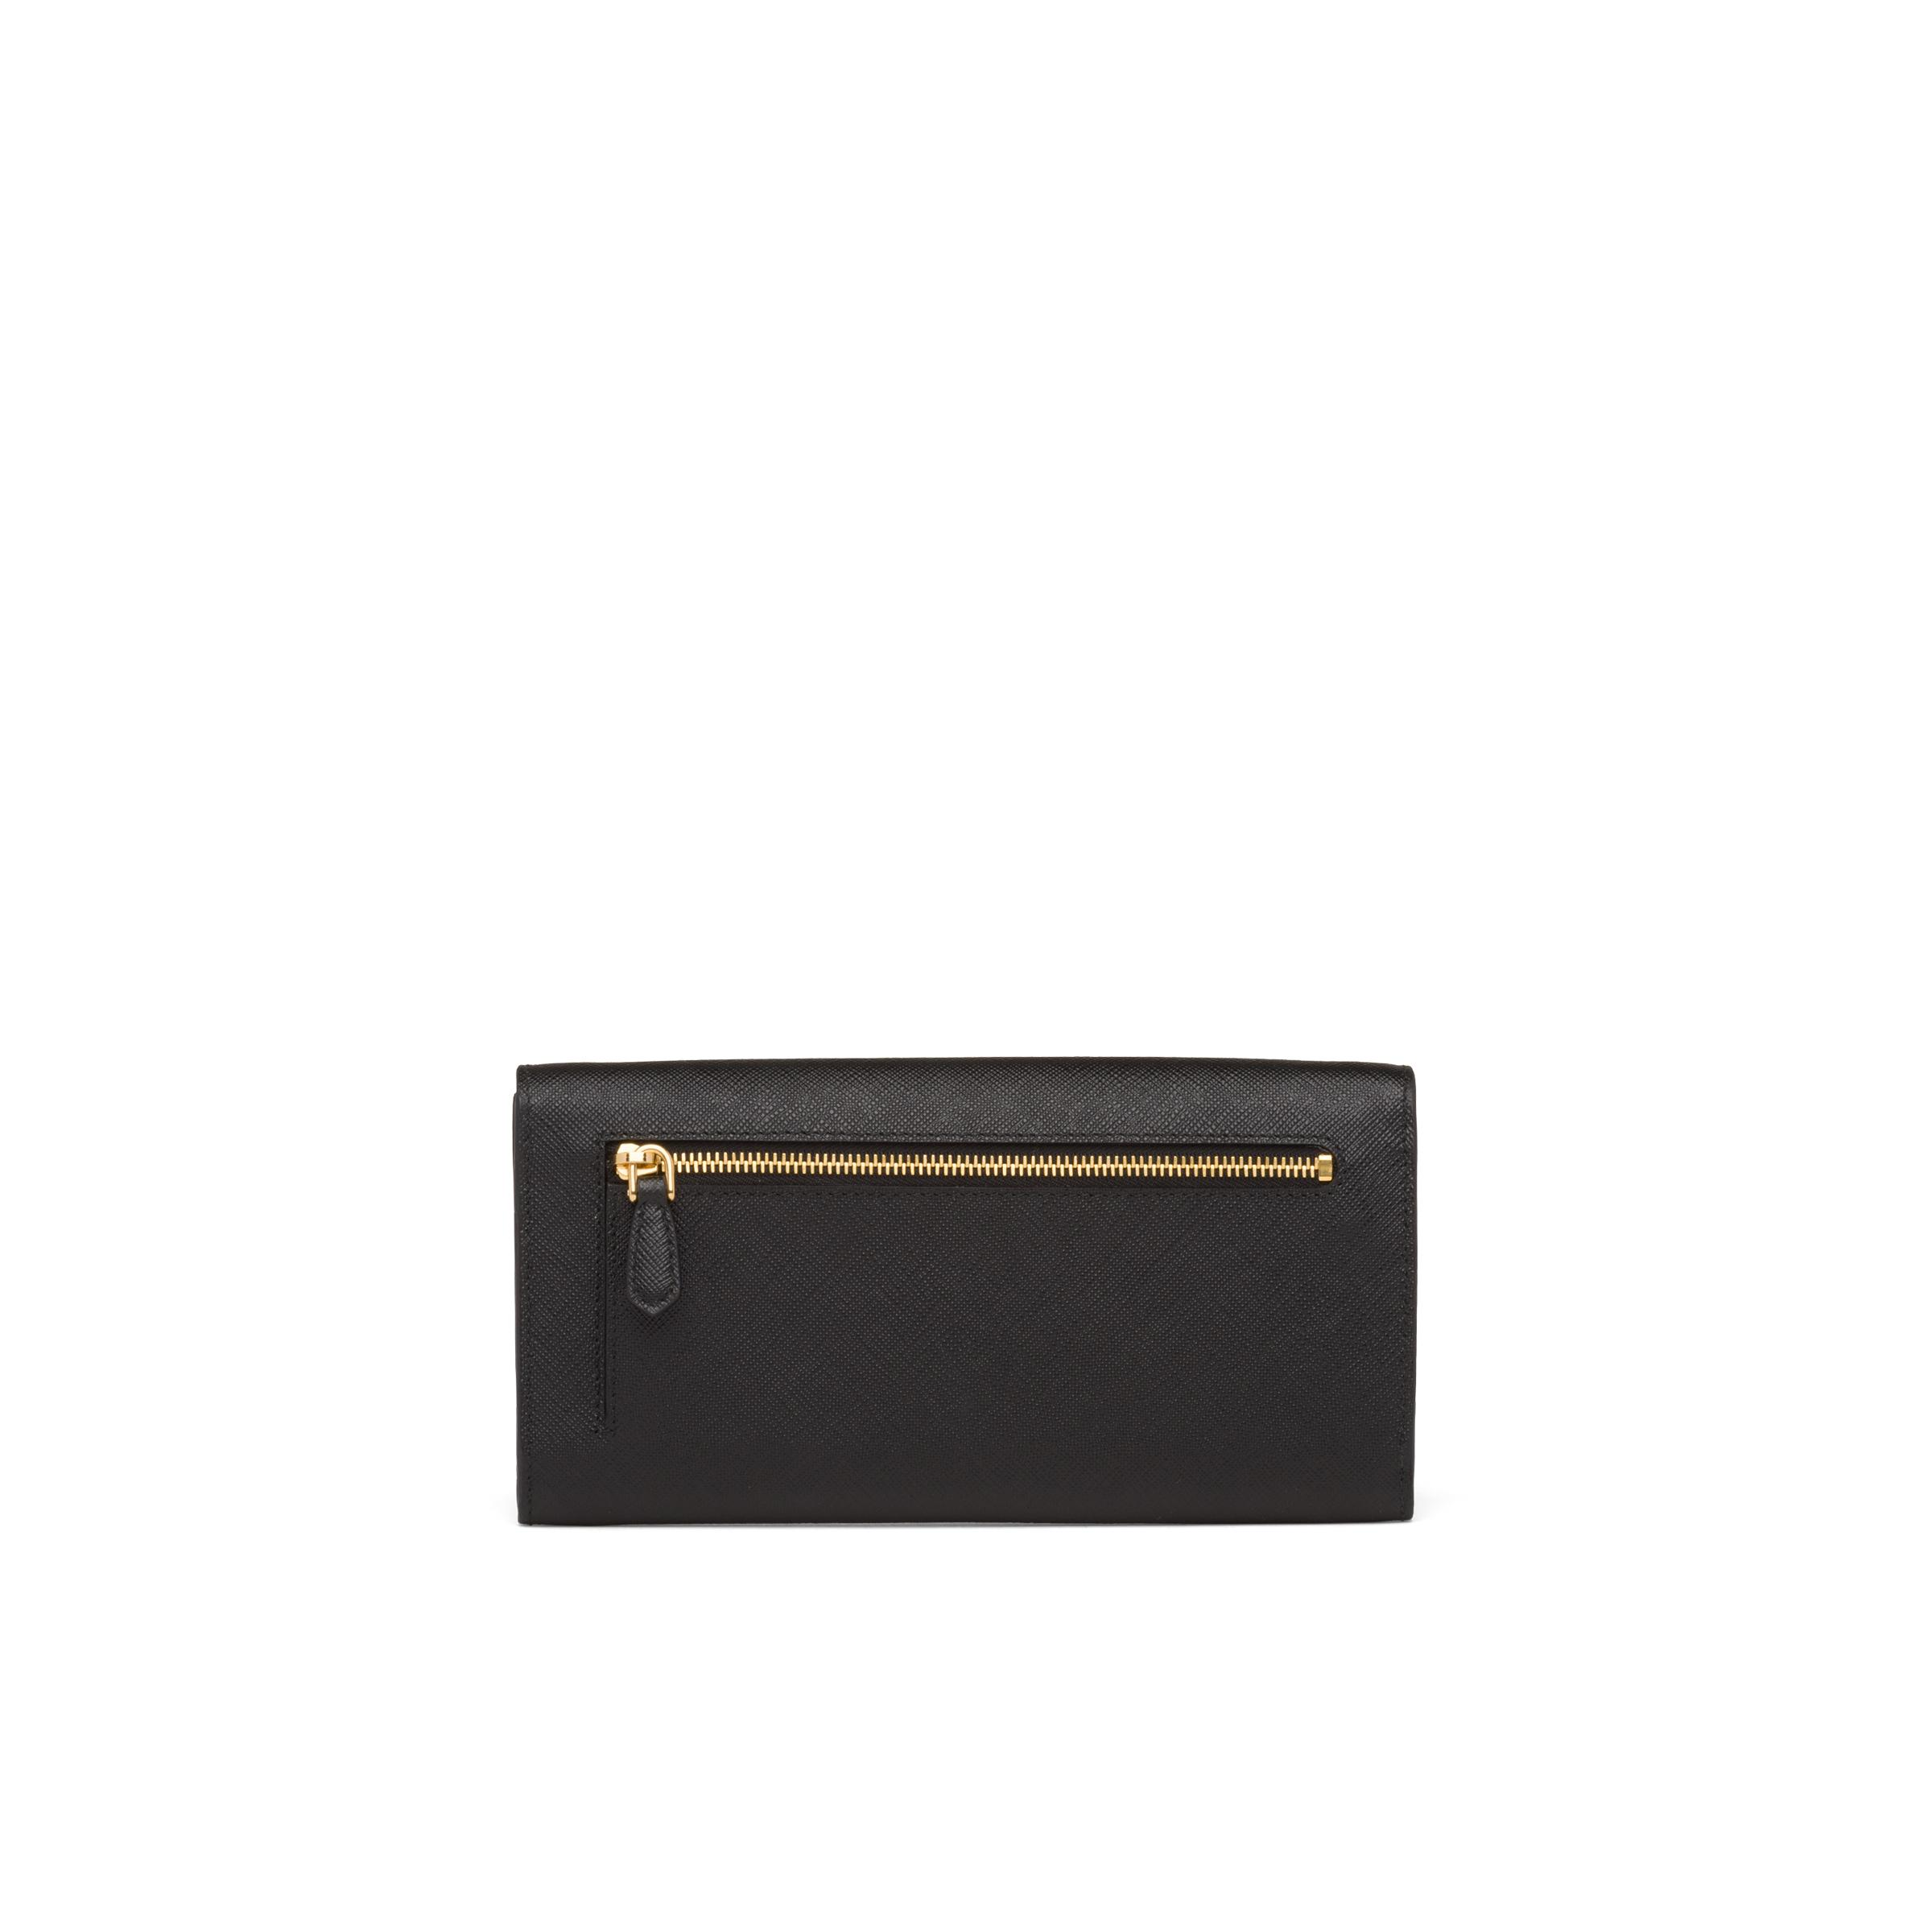 Saffiano Leather Wallet With Shoulder Strap Women Black 3